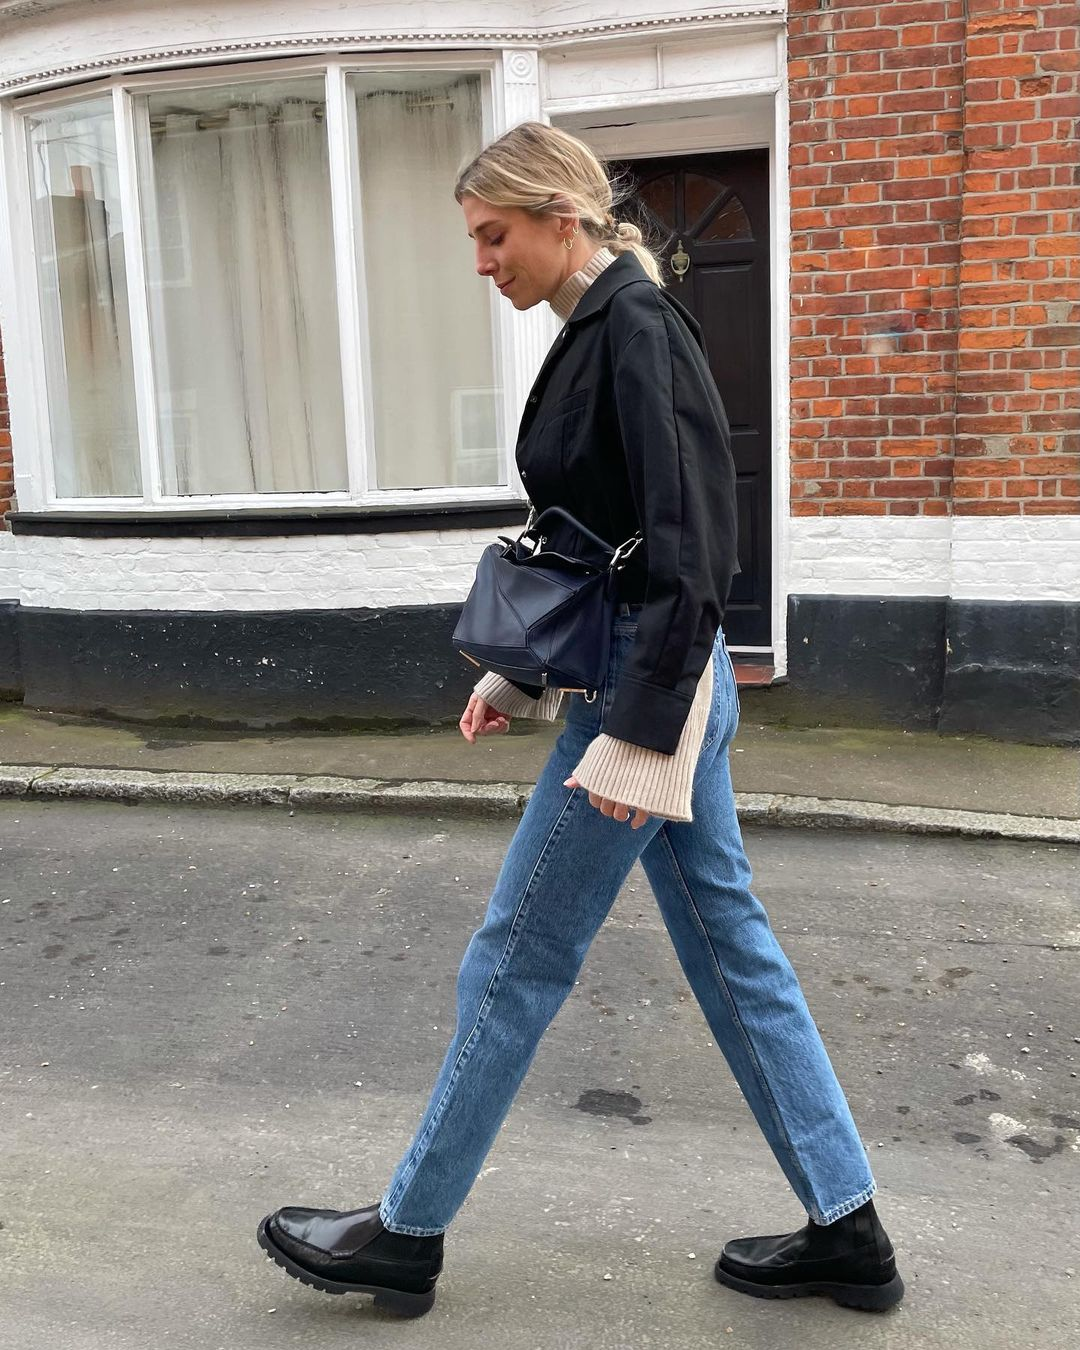 Transitional Spring Outfit Idea - Lindsey Holland Instagram Look With a Black jacket, Beige Turtleneck Sweater, Jeans, Loewe Crossbody Bag, and Lug-Sole Boots